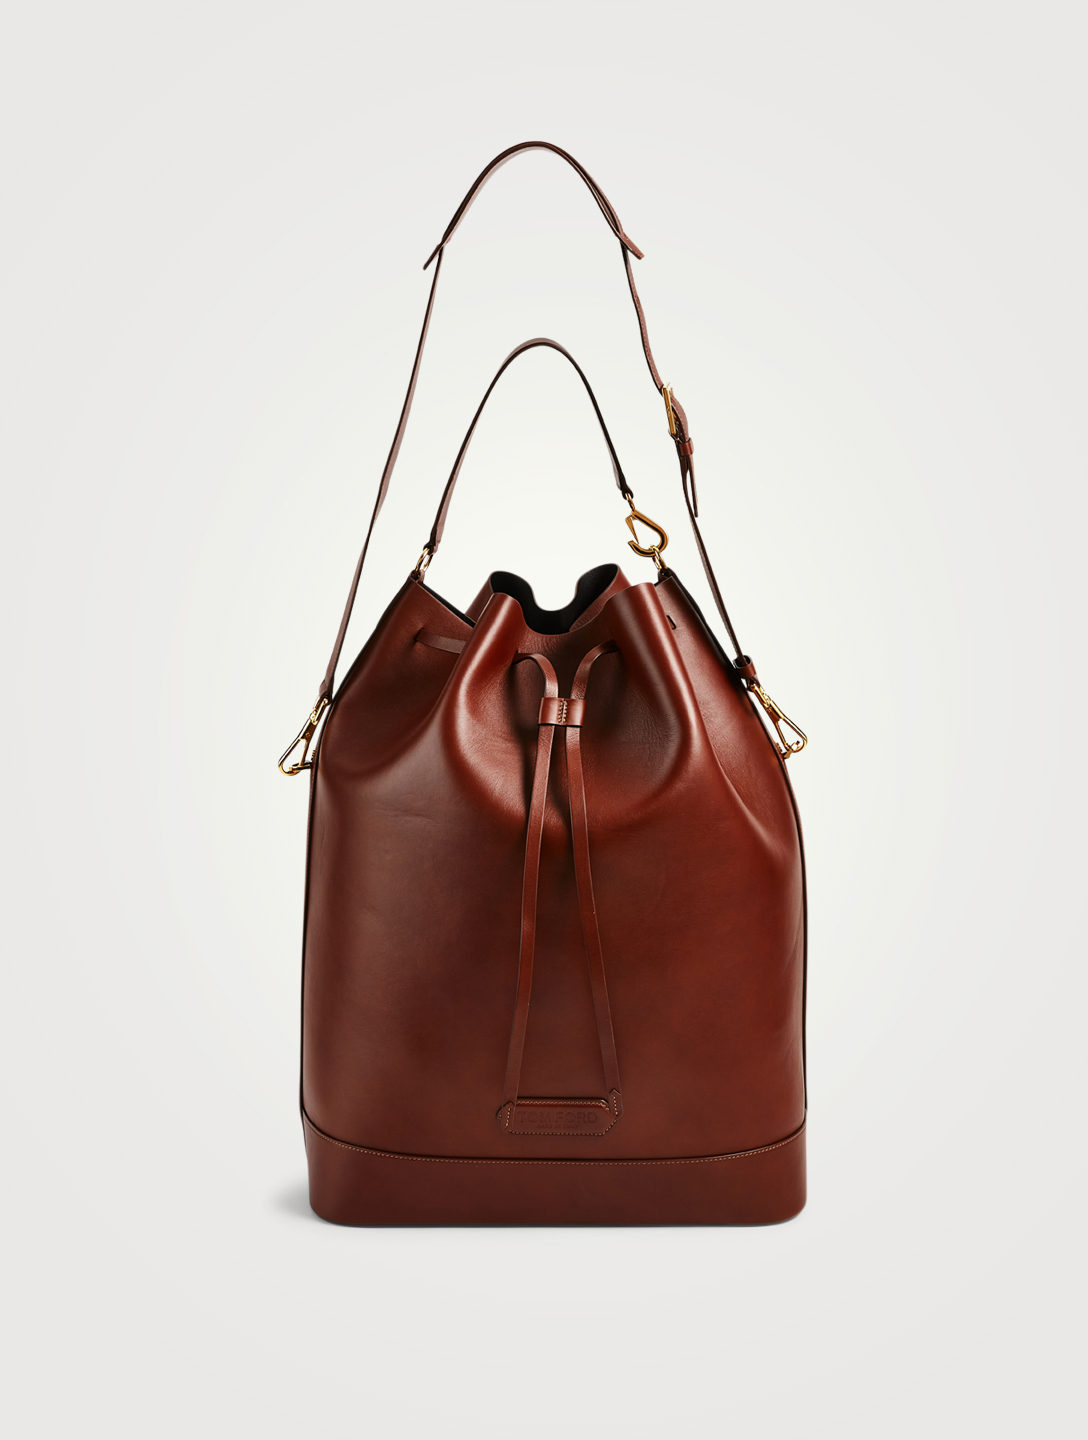 TOM FORD Leather Drawstring Bucket Bag Men's Brown